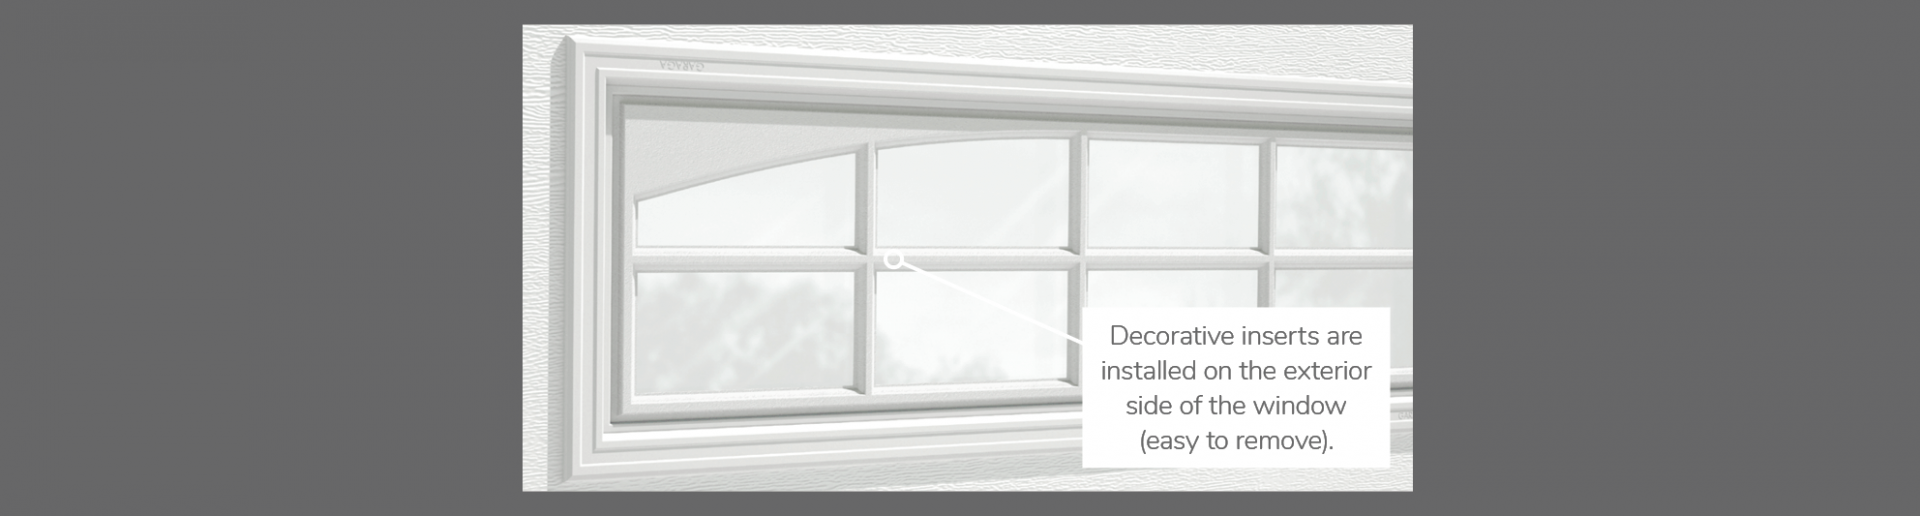 "Double Stockton Arch Decorative Inserts, 40"" x 13"", available for door R-16 and R-12"